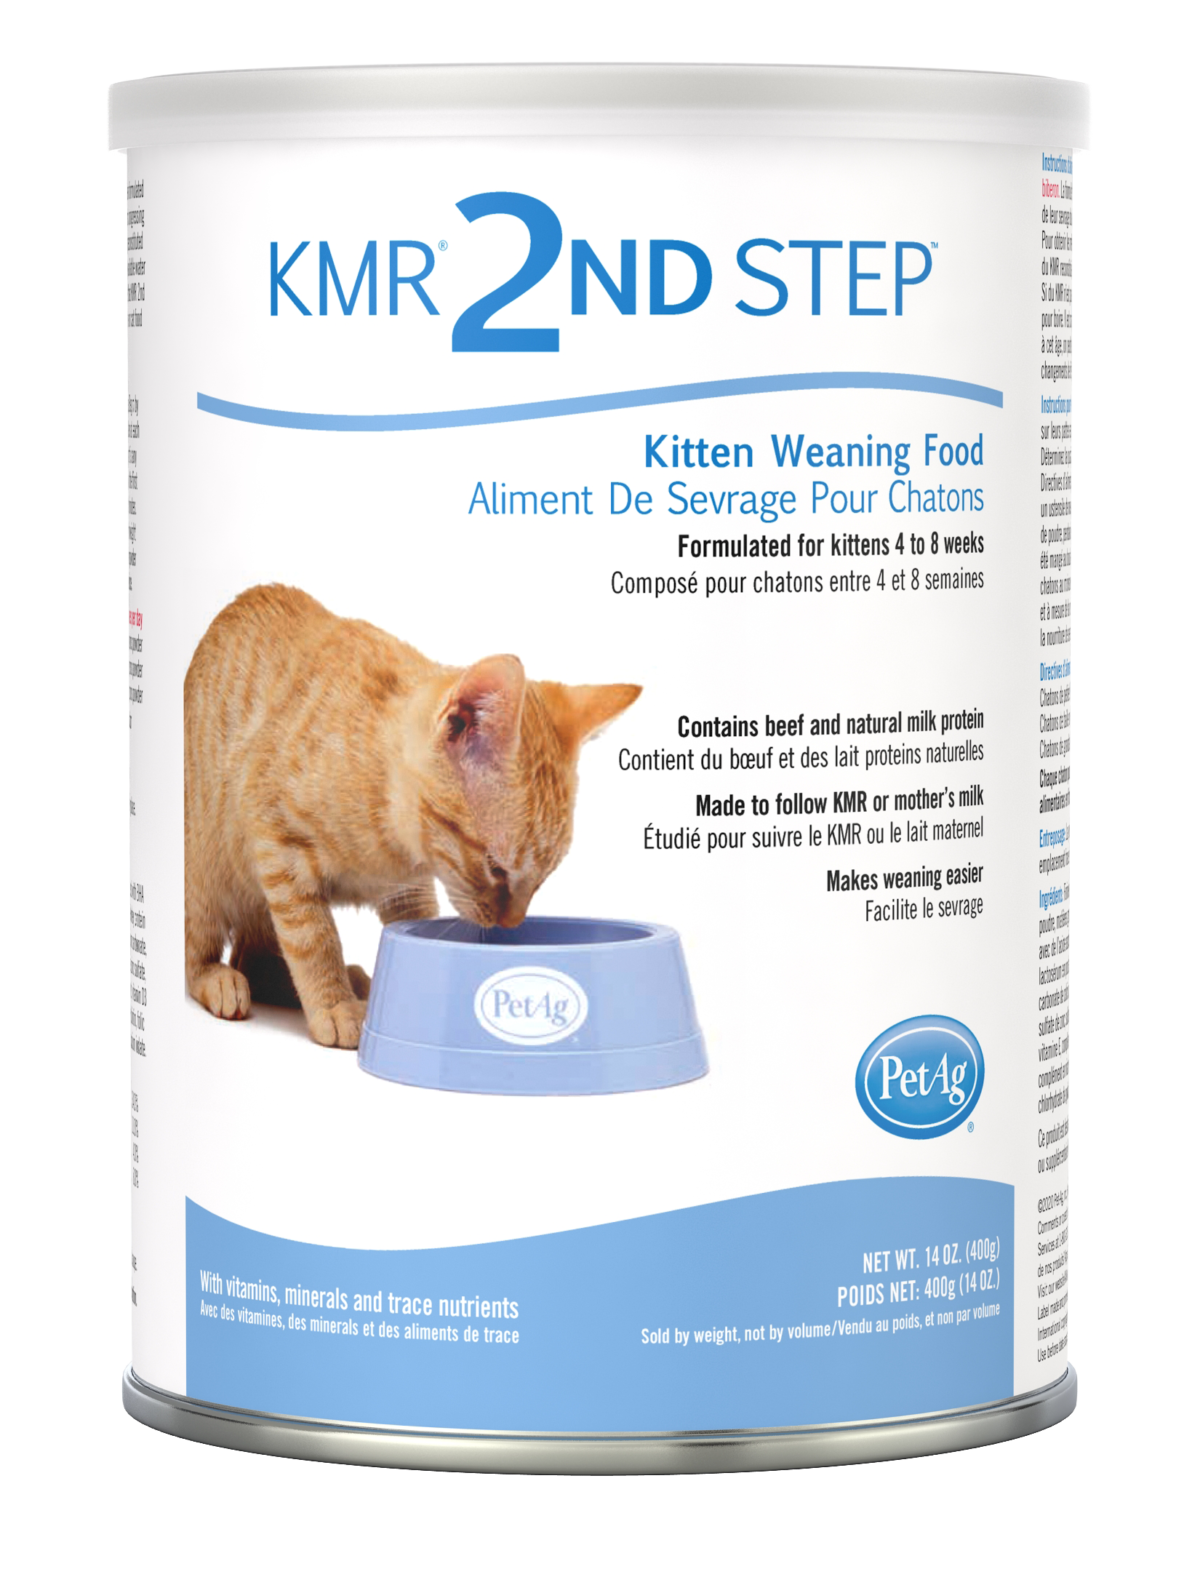 PetAg KMR  2nd Step Kitten Weaning Food, 14-oz can